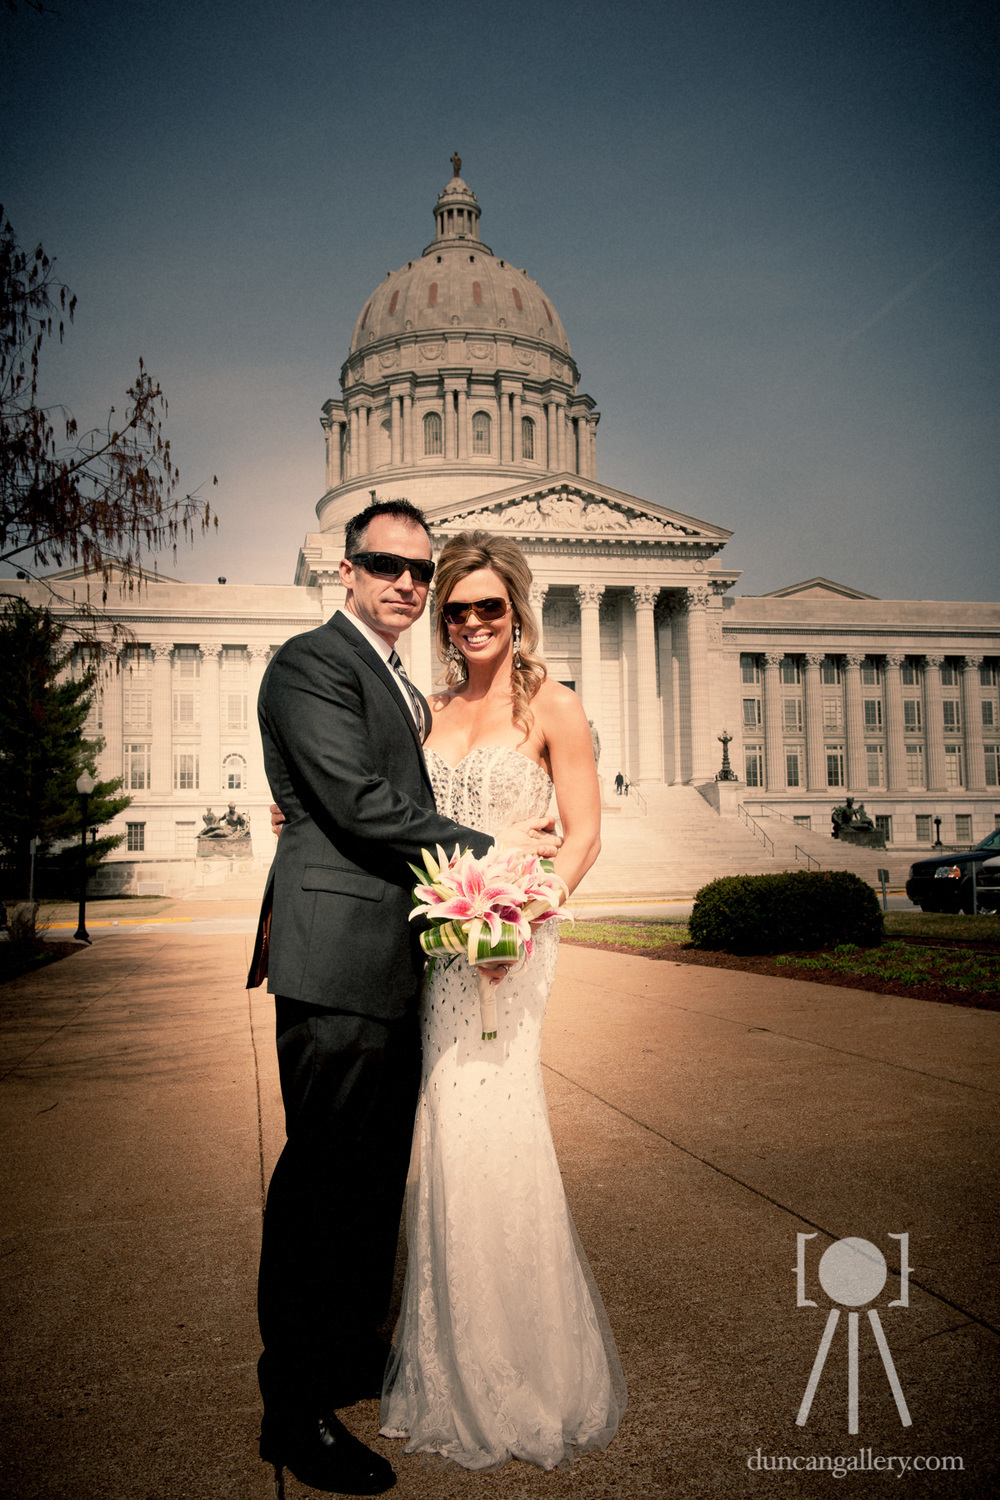 Bride and Groom with sunglasses